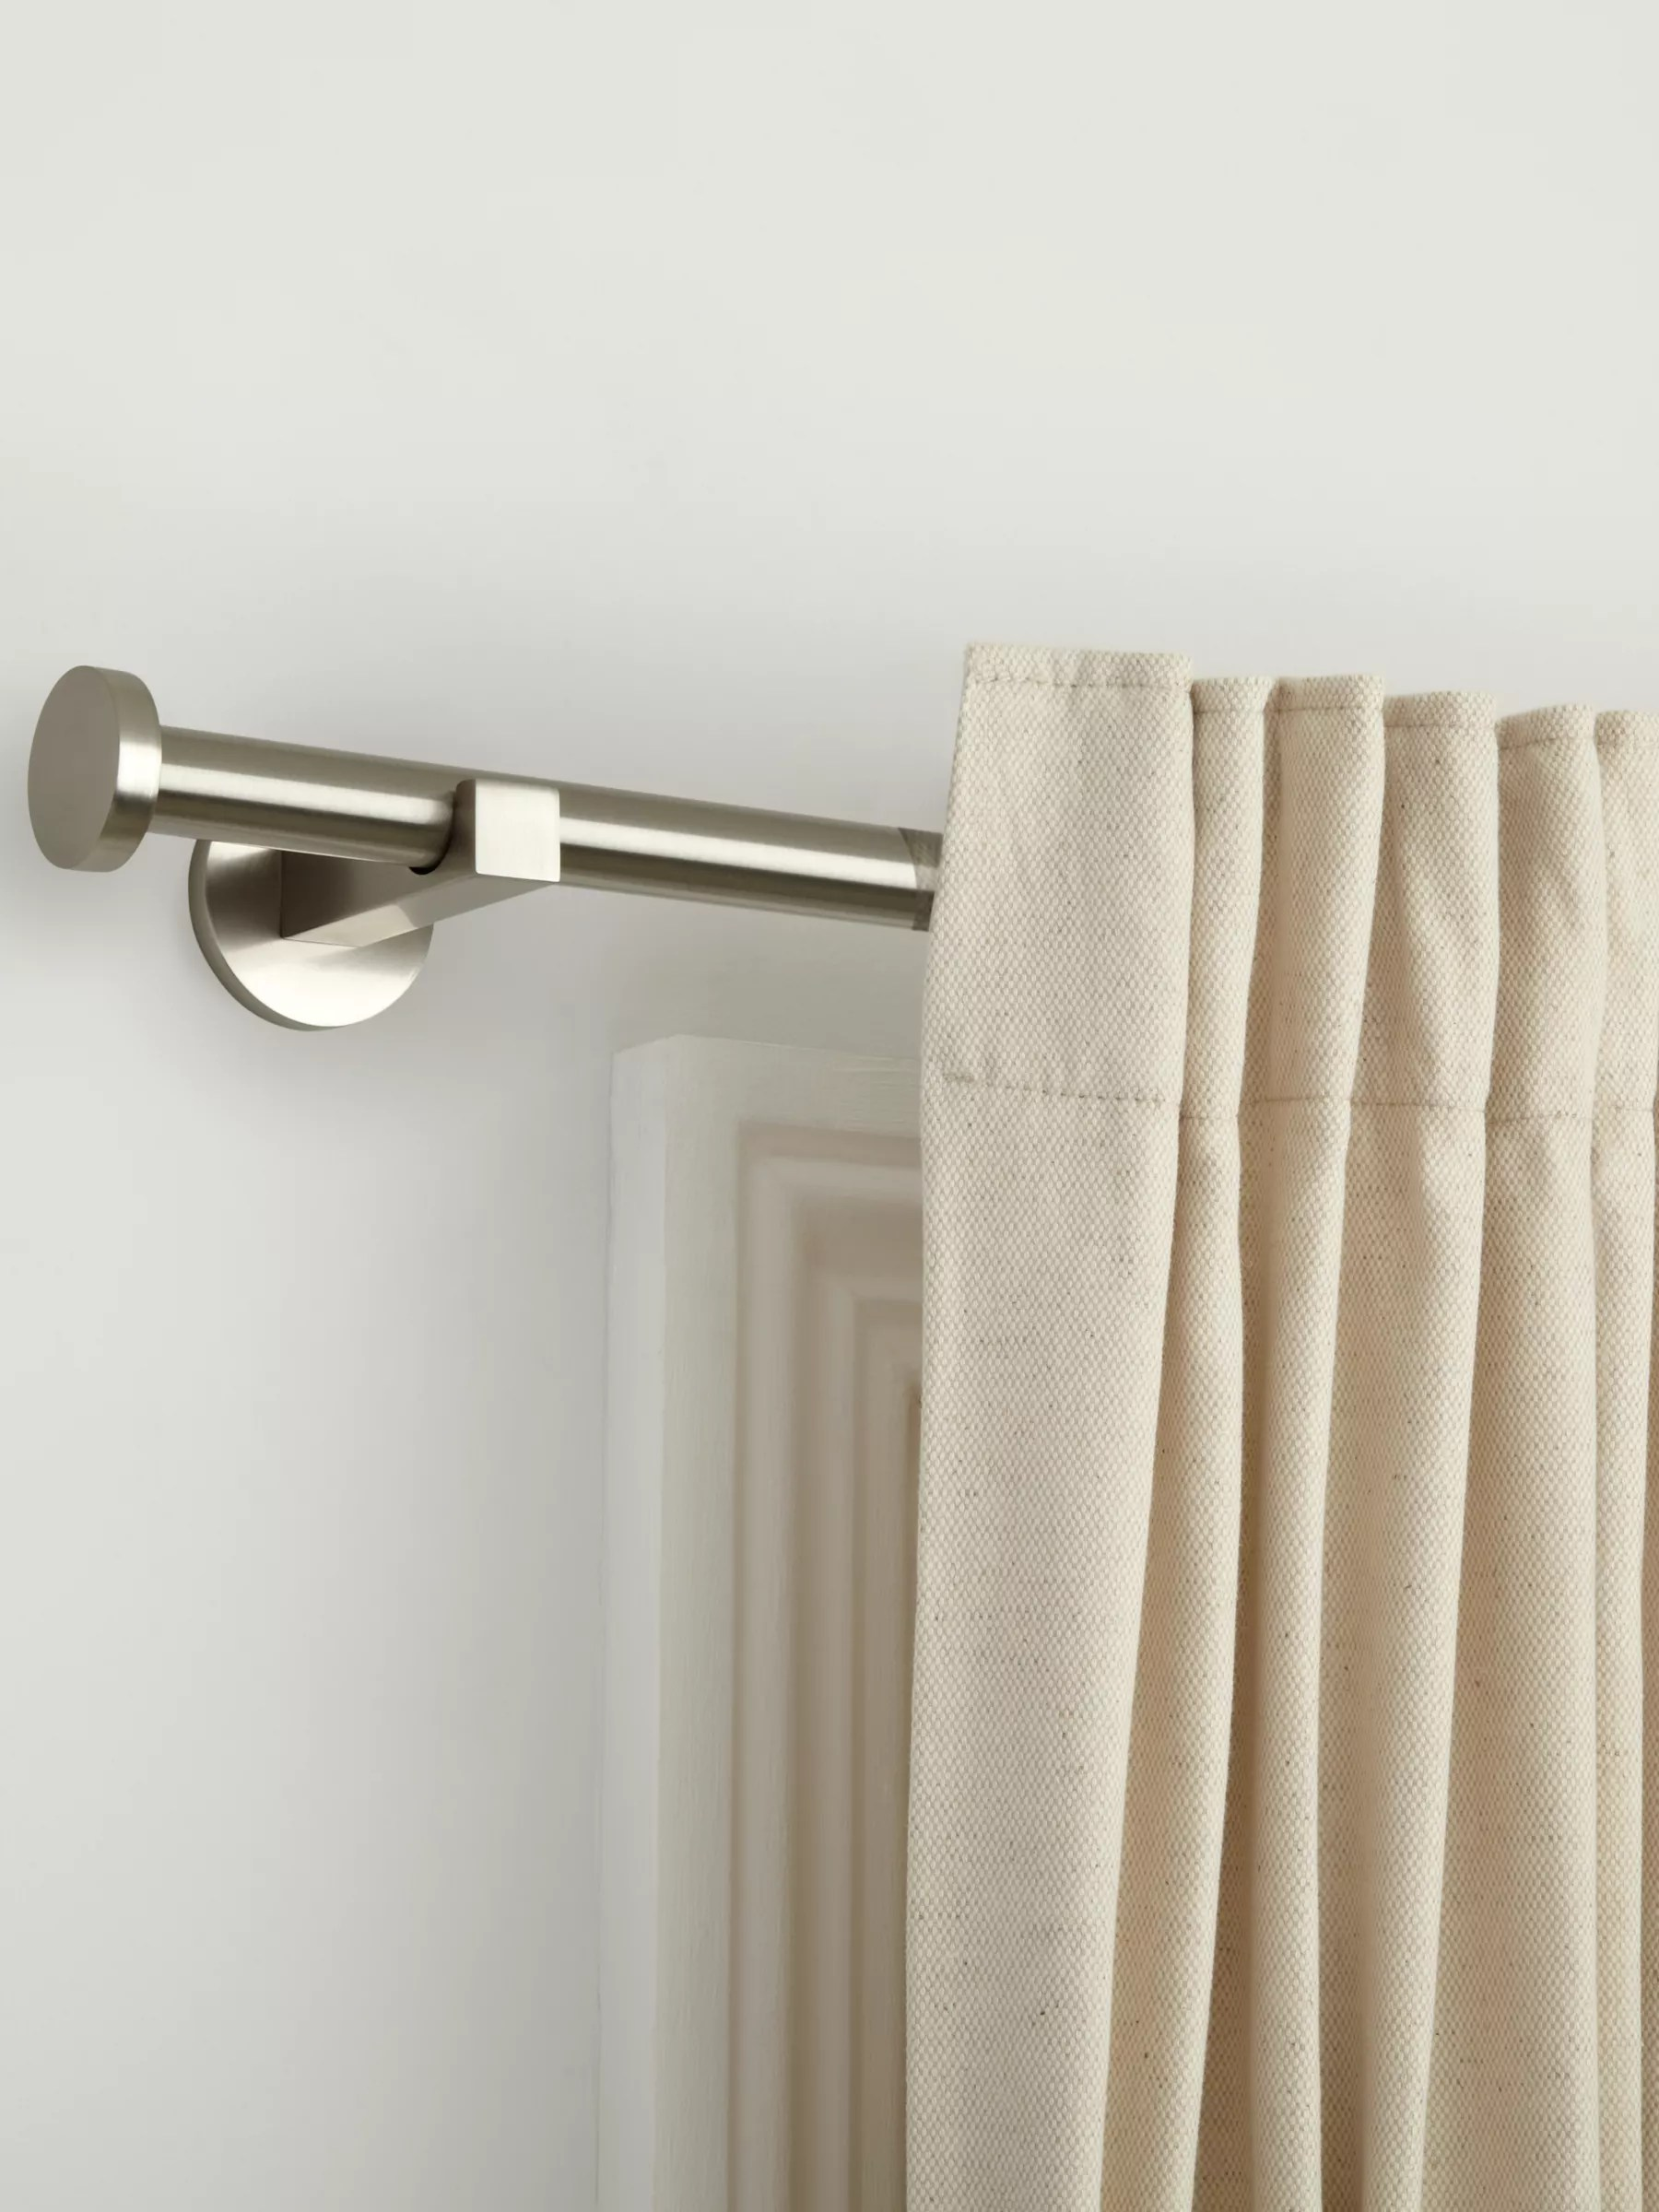 Door Curtain Pole Door Curtain Pole John Lewis Flisol Home